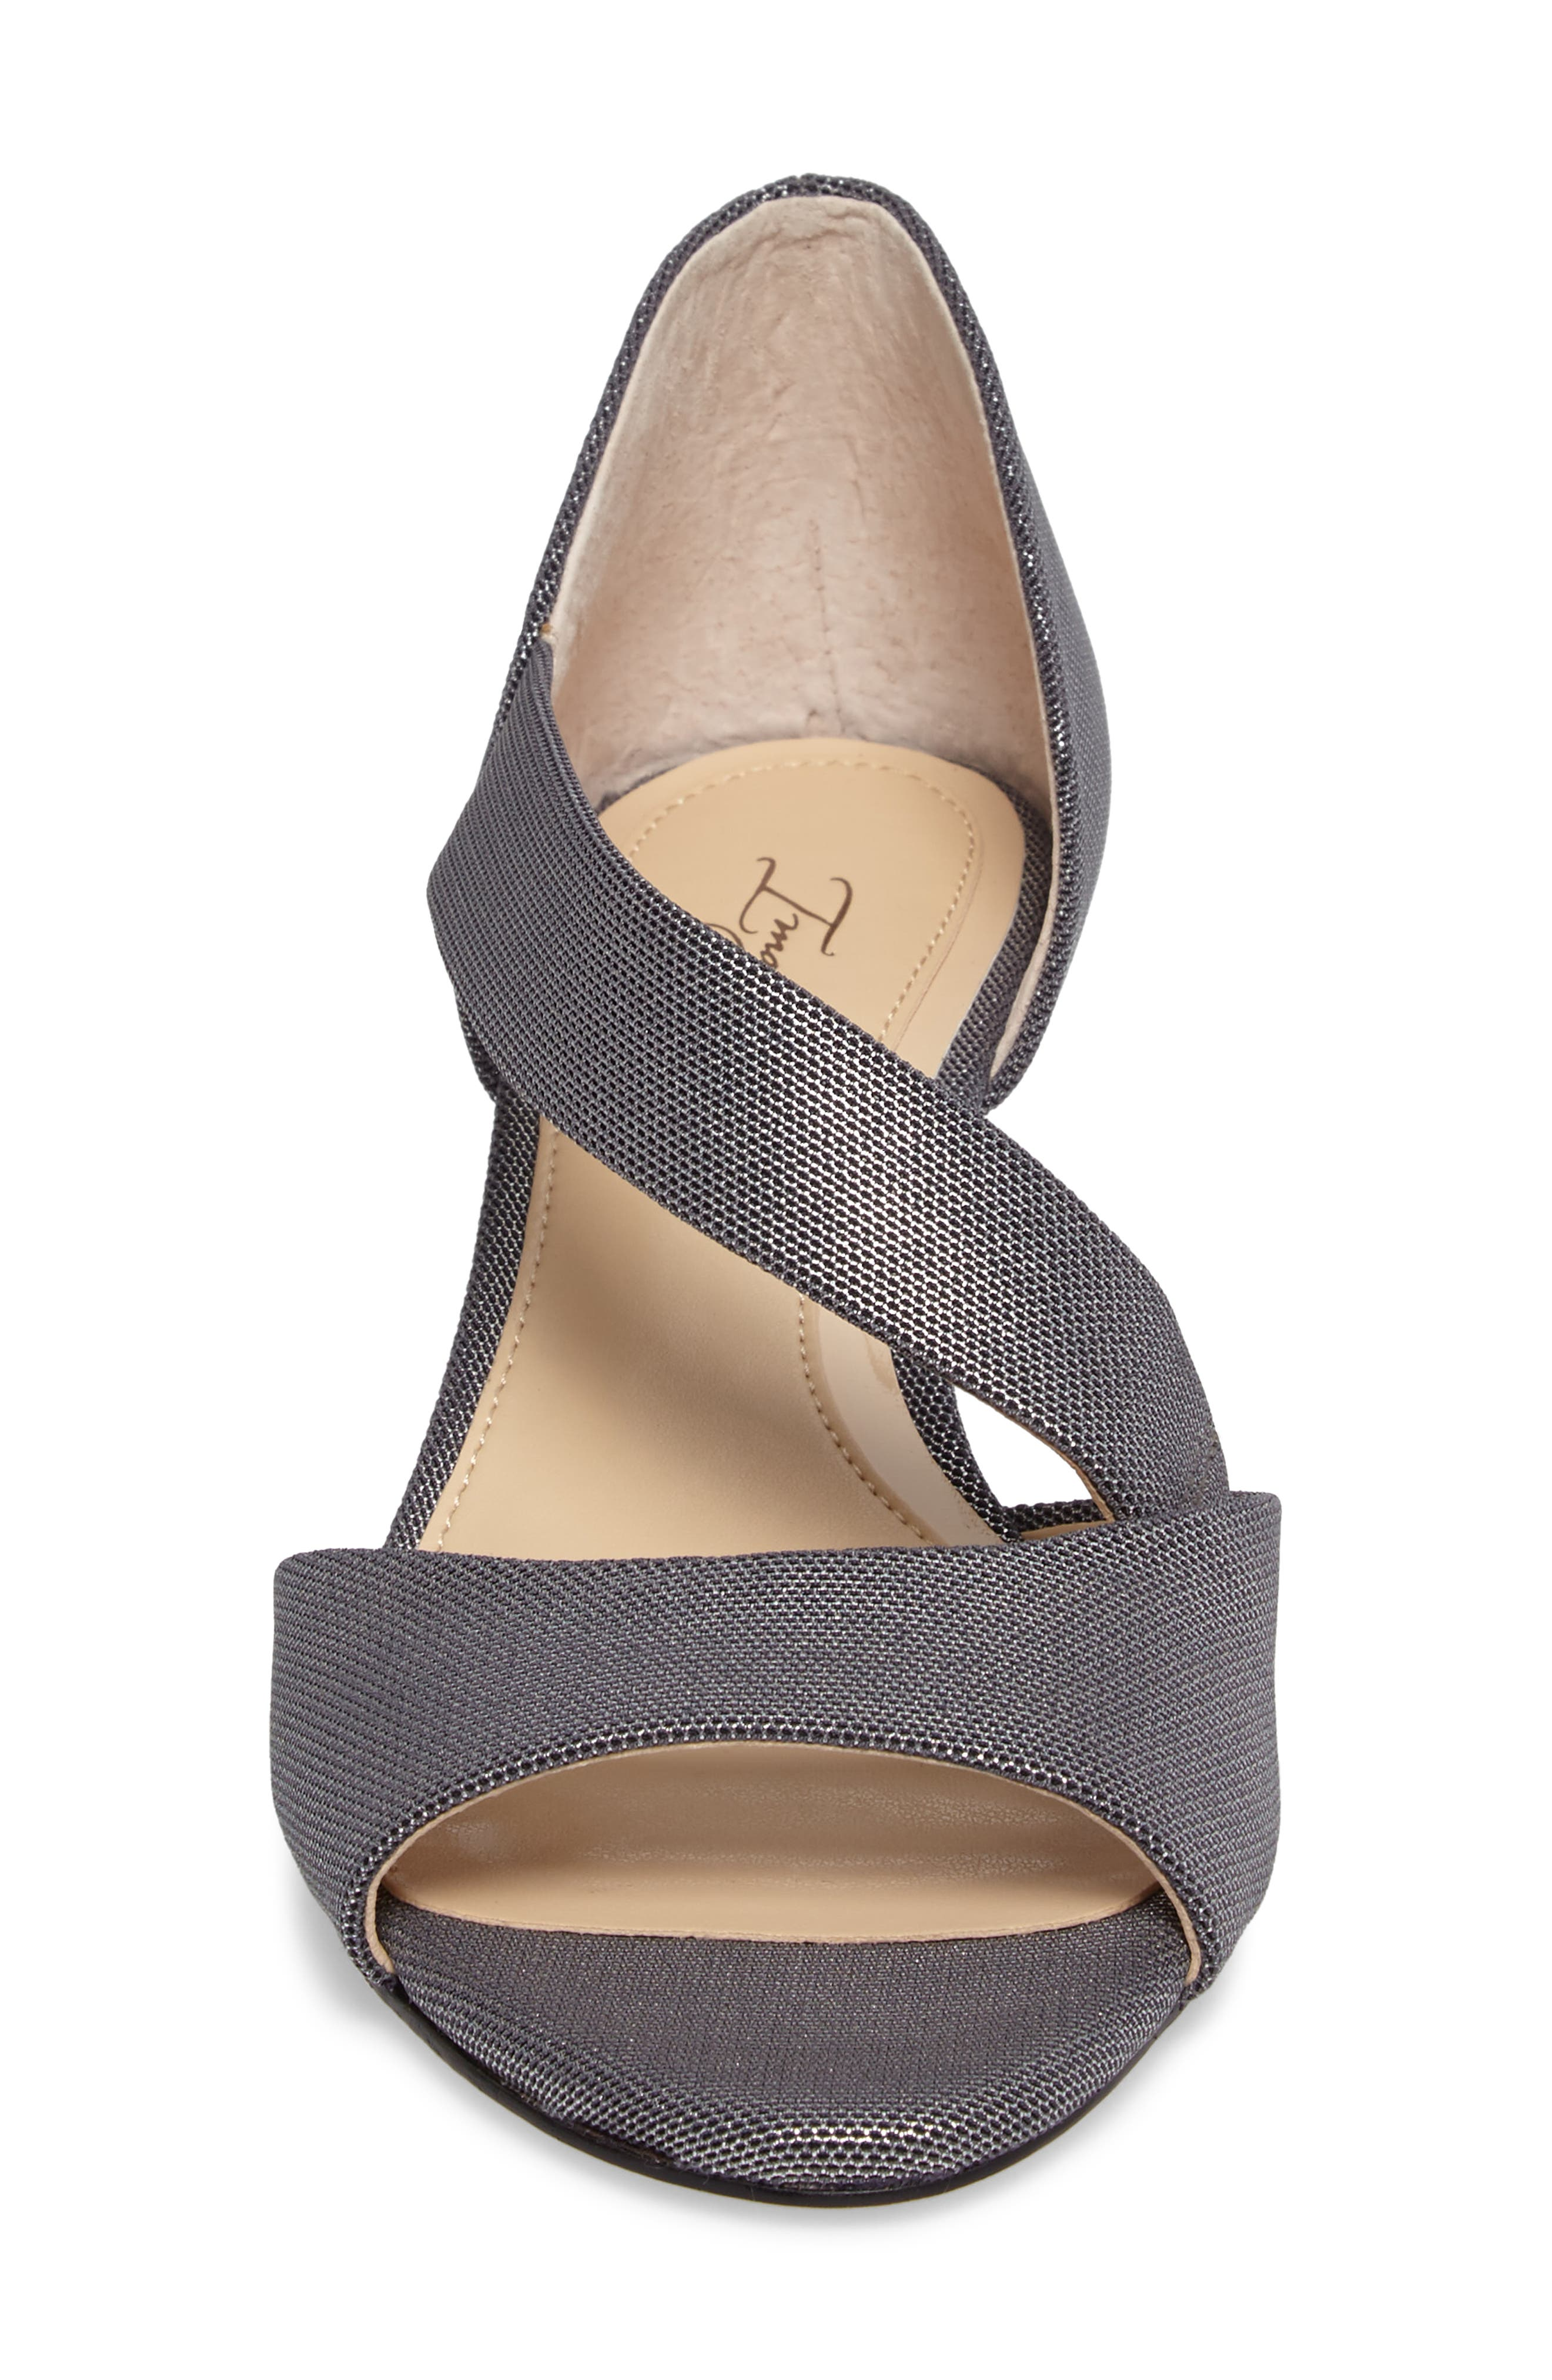 Jefre Wedgee Sandal,                             Alternate thumbnail 4, color,                             Anthracite Fabric